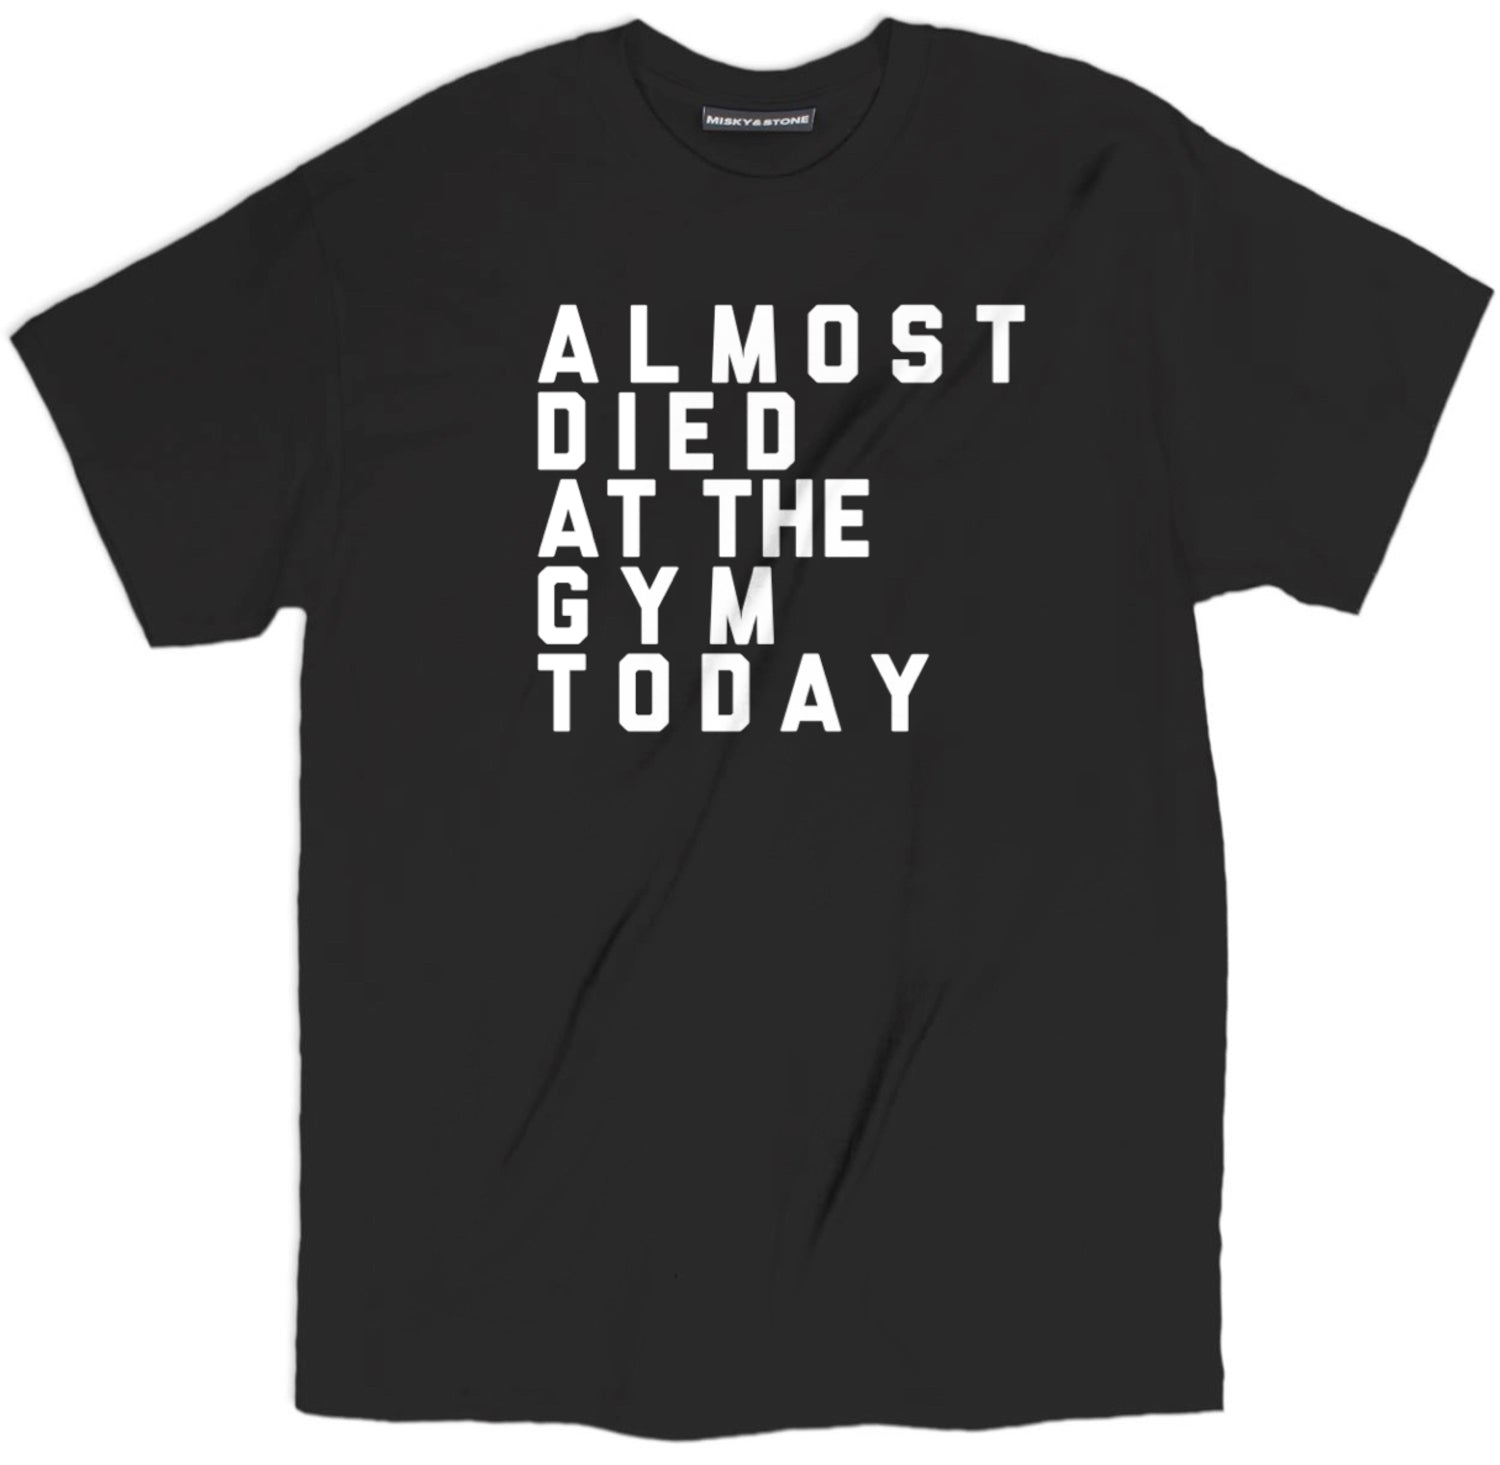 almost died at the gym today tee, intense gym t shirt, workout killed tee, funny gym shirts, funny gym t shirts, workout shirts with sayings, funny fitness shirts, gym t shirts, funny workout shirts, gym tops, fitness shirts, workout shirts, funny workout clothes,